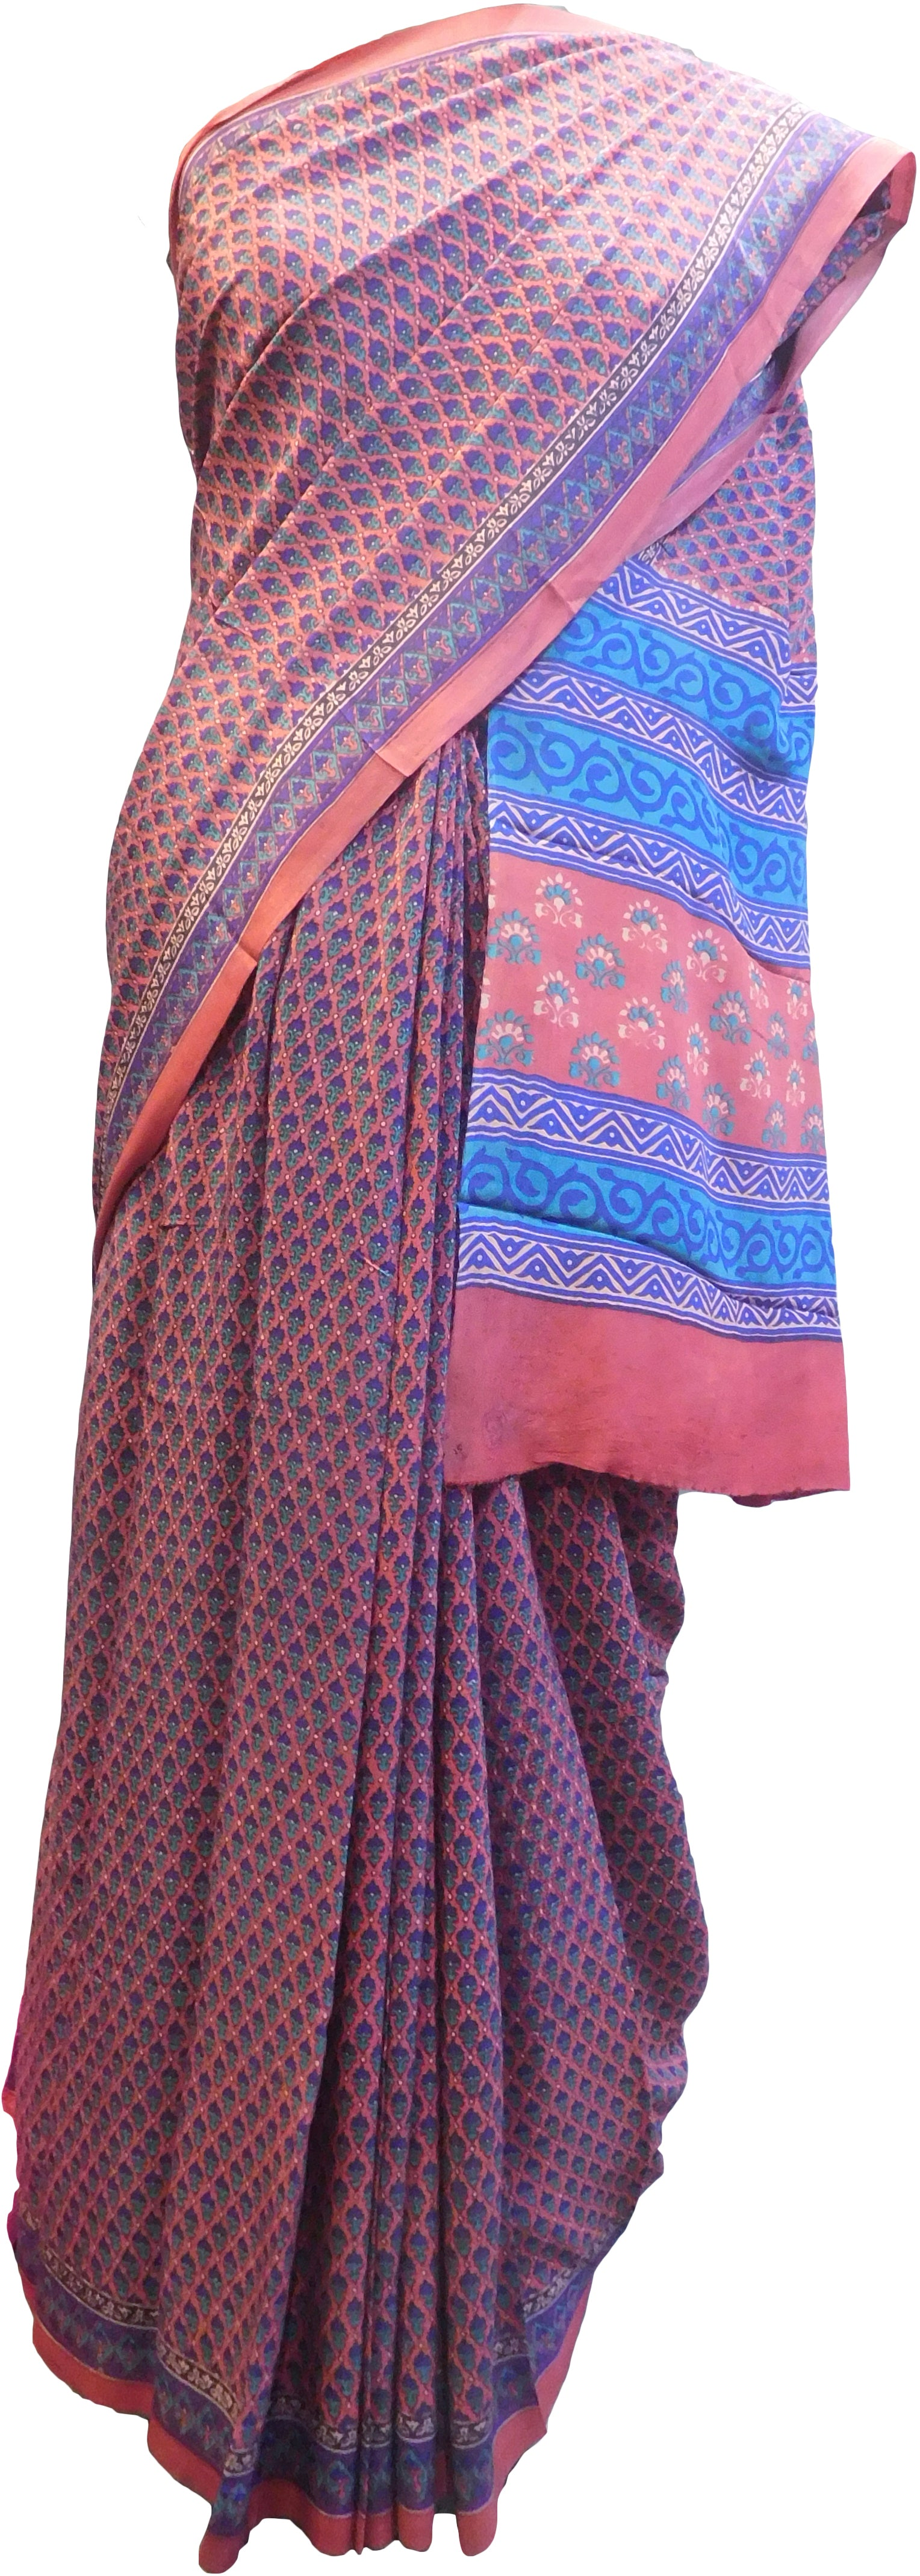 Multicolor Designer Wedding Partywear Pure Crepe Hand Brush Reprinted Kolkata Saree Sari With Blouse Piece  RP279